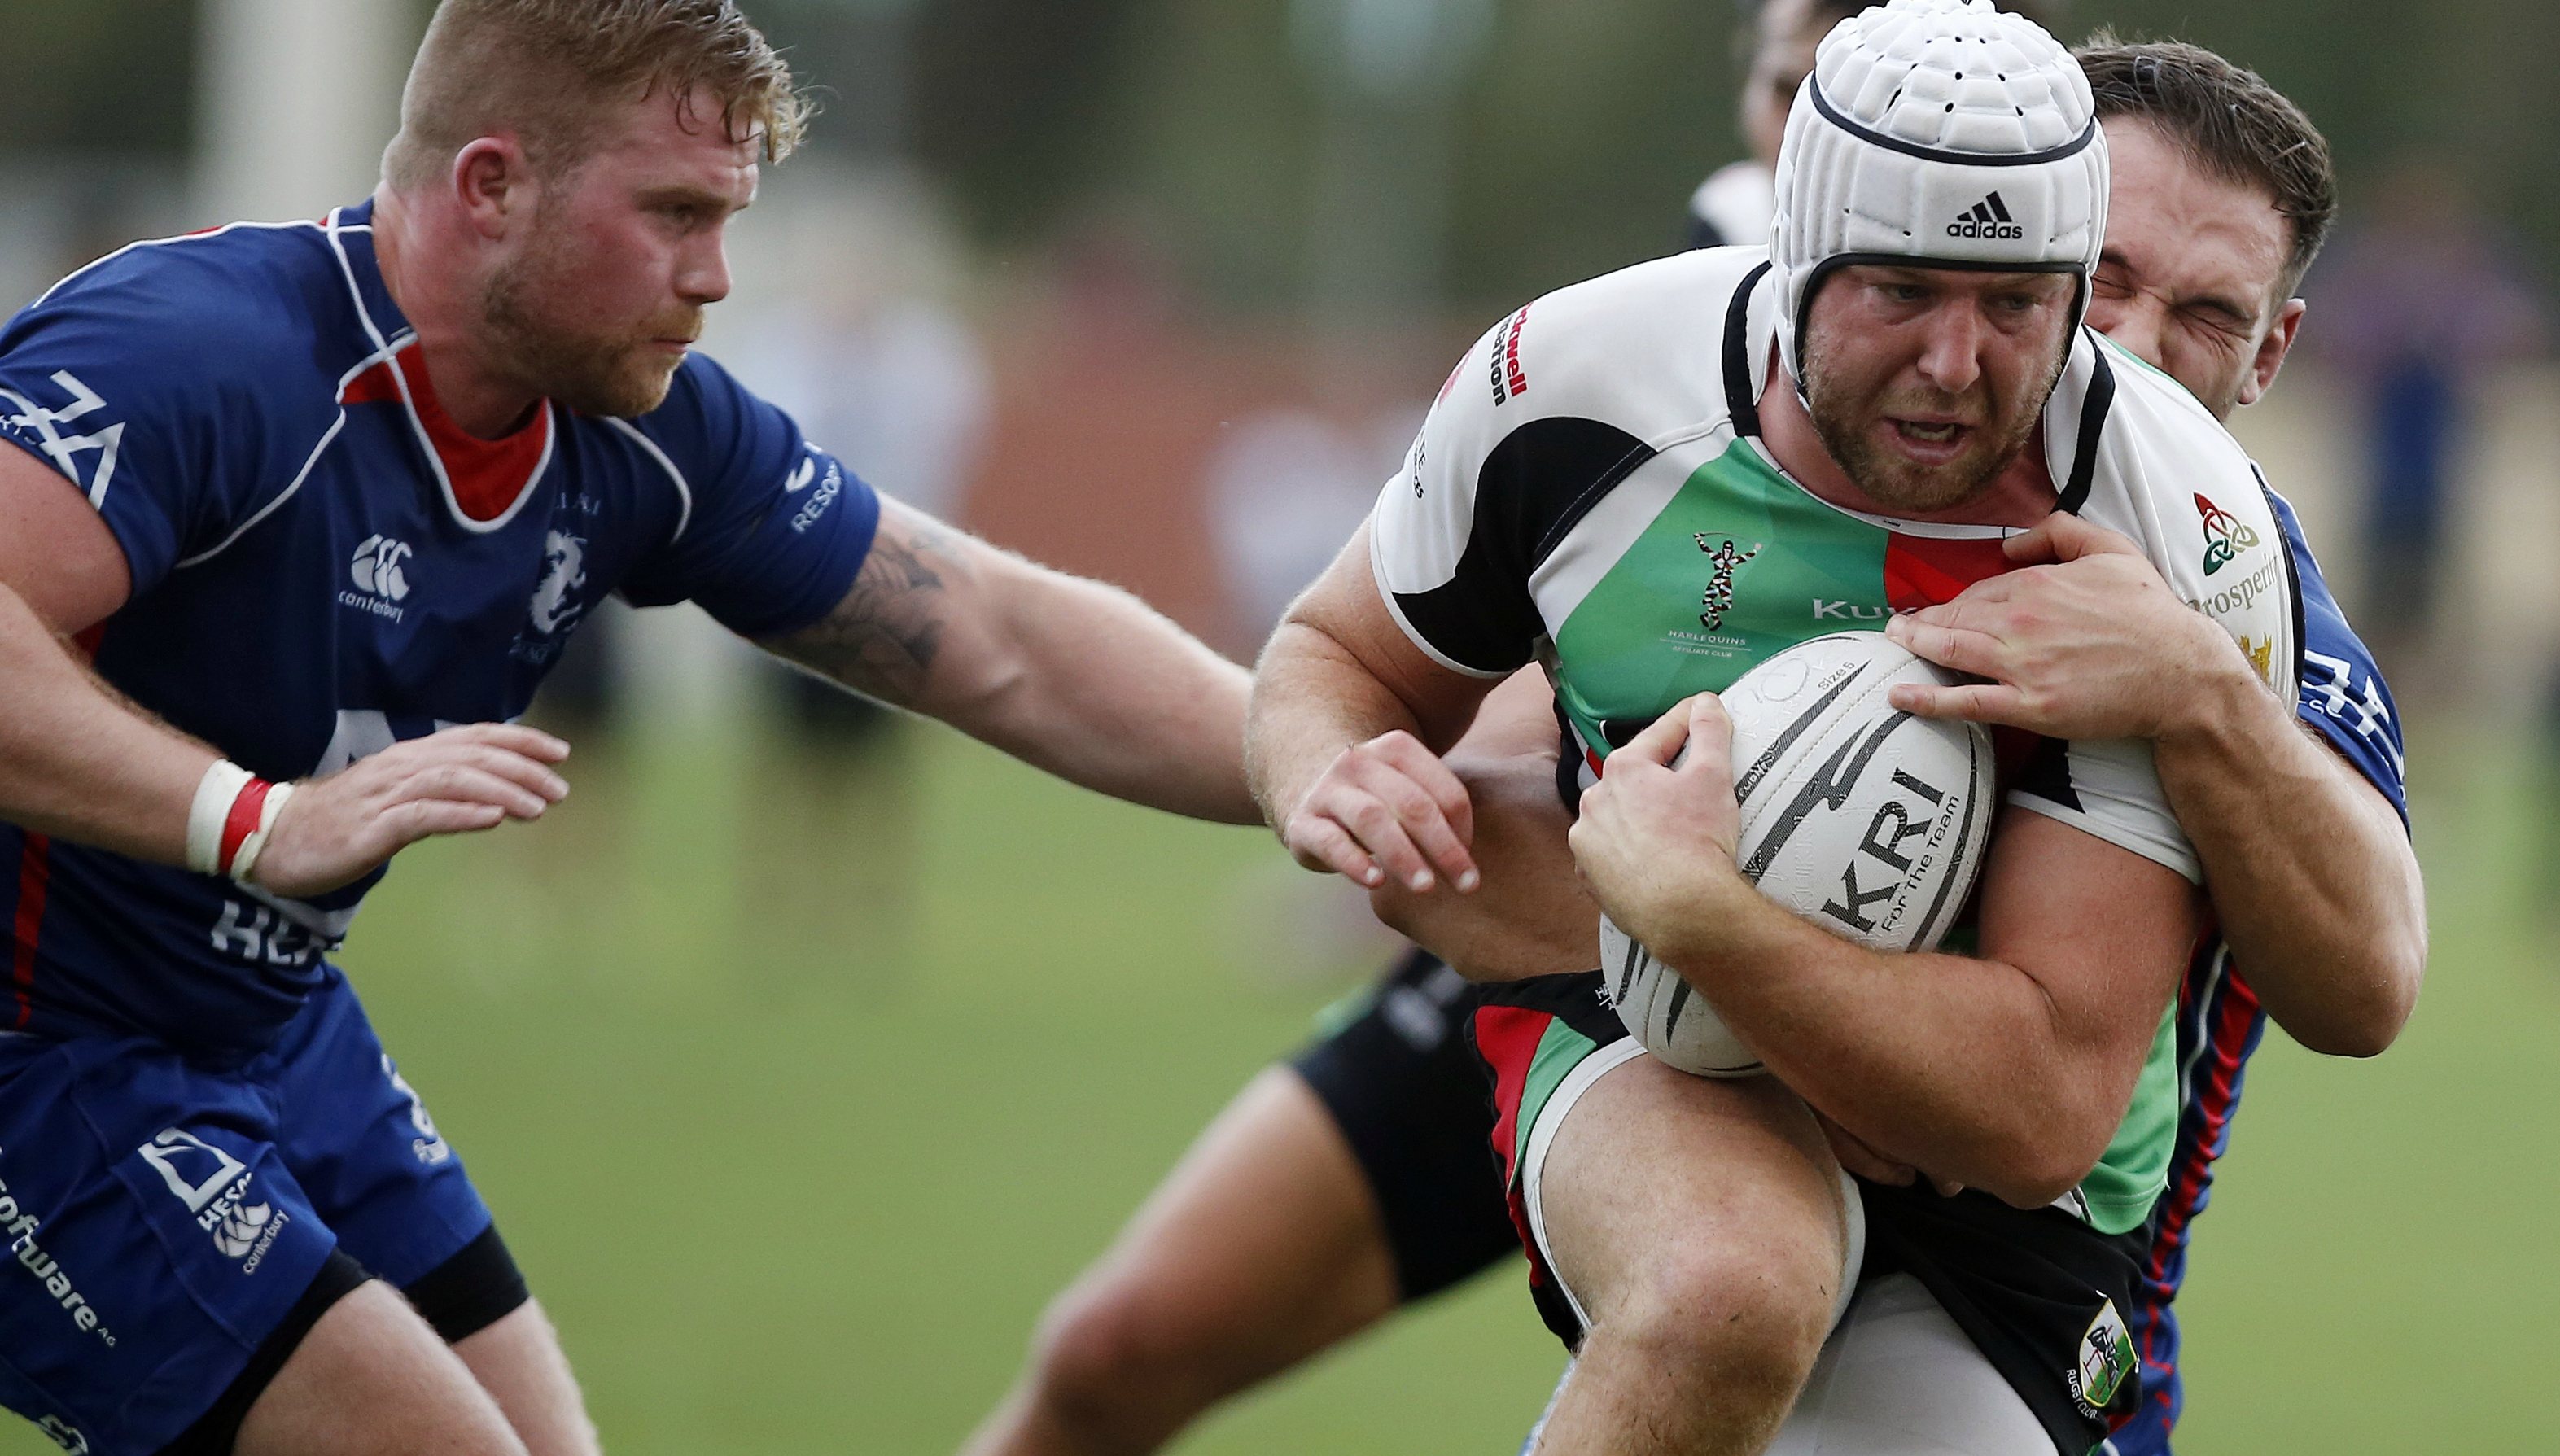 Ben Bolger has been one of the standout stars of UAE rugby since 2012